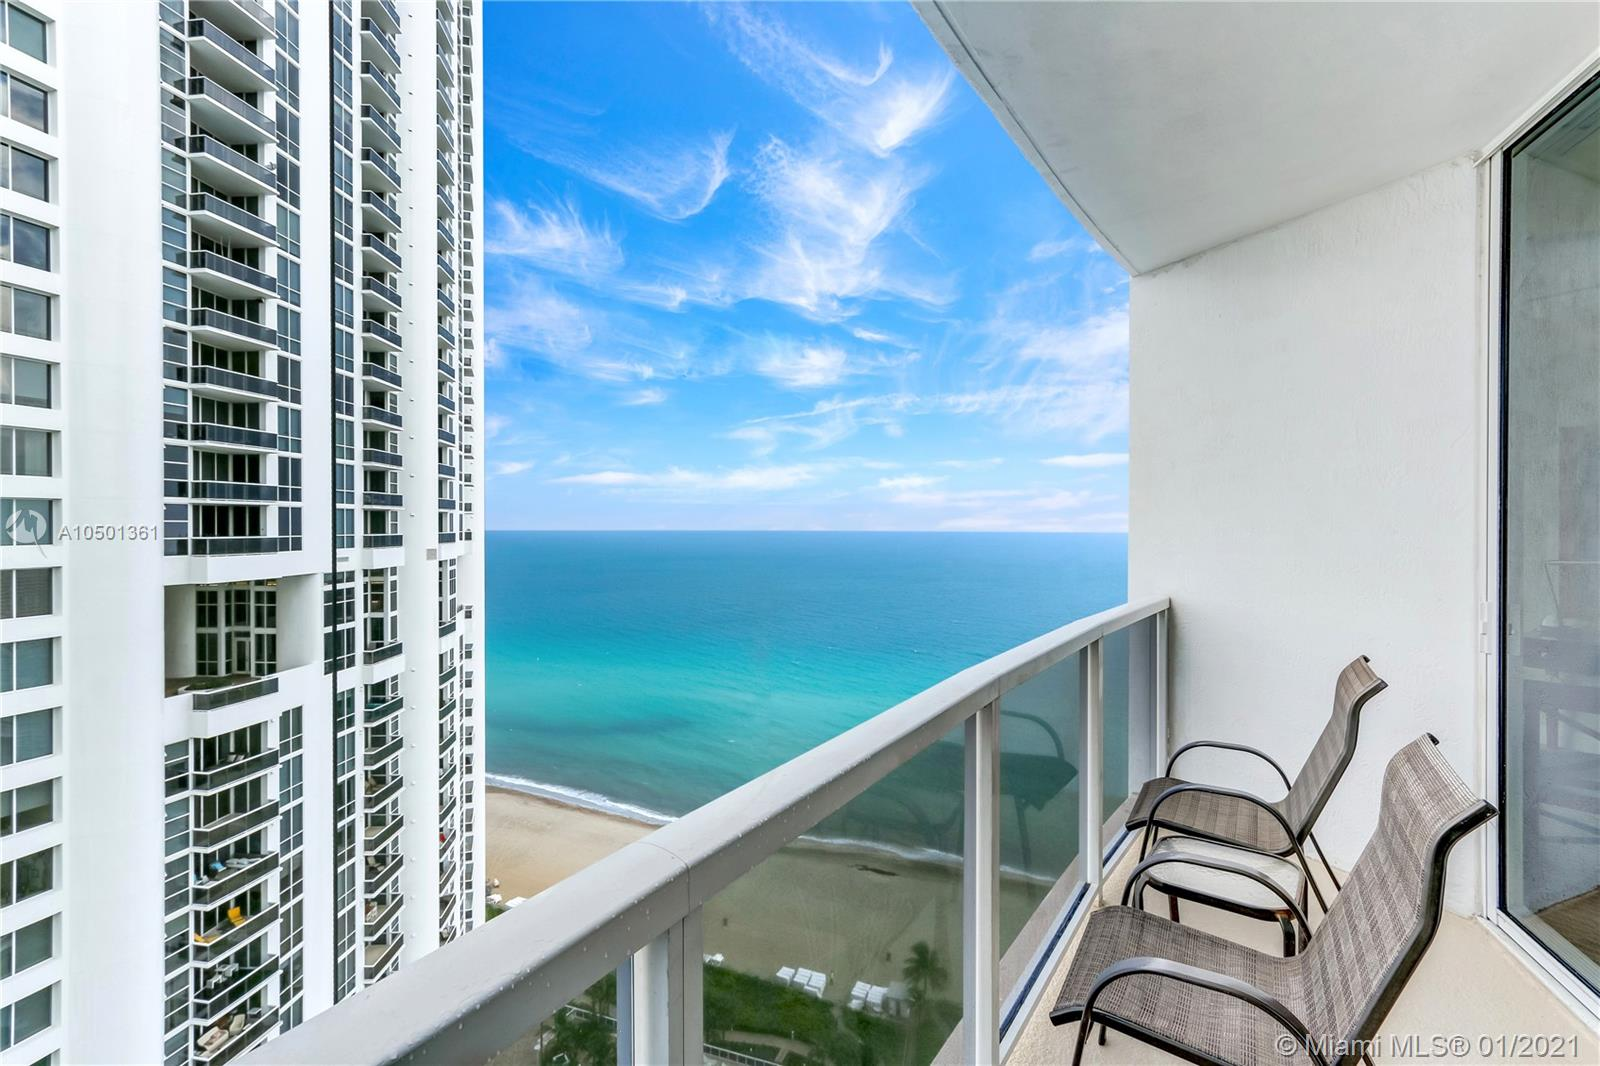 18001 Collins Ave 33160 - One of Sunny Isles Beach Homes for Sale